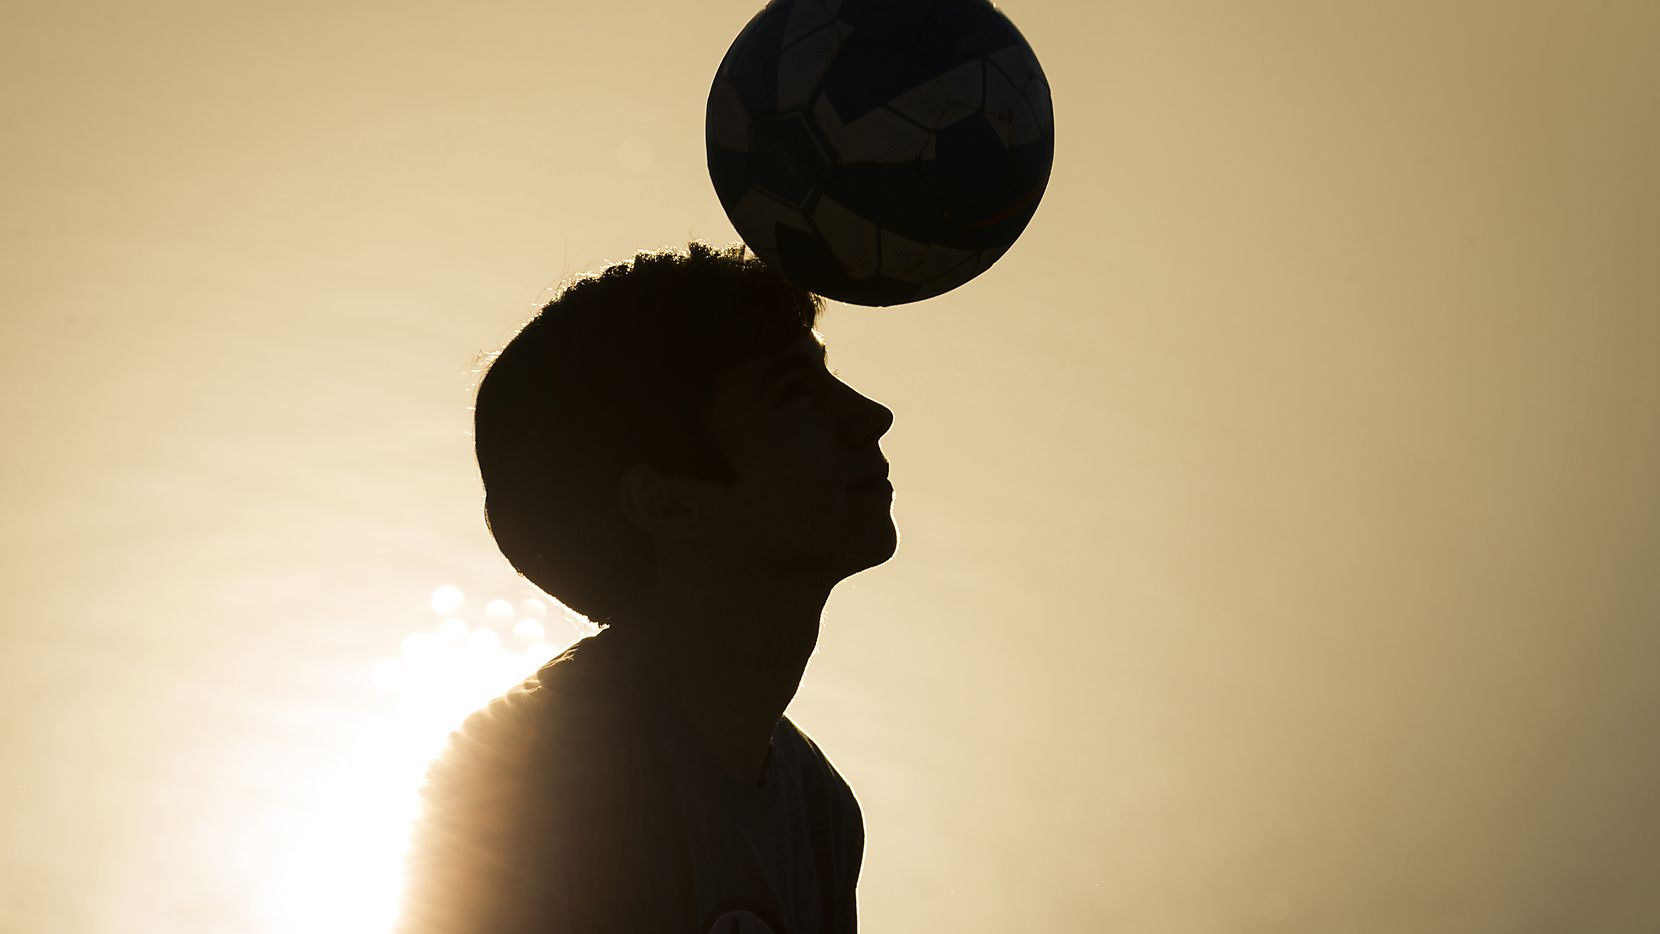 Dallas Morning News file photo, 2015: Nicolas Reyes, 13, heads a soccer ball at a park near his home on Monday, Dec. 14, 2015, in Coppell. Reyes got a concussion playing soccer in October and had to miss school and stop playing sports so he could recover. He was recently cleared to return to normal activities and is participating in a UT Southwestern registry of brain injuries.  Researchers hope the registry will help them learn more about concussions, and how some people recover sooner or show fewer symptoms than others. (Smiley N. Pool/The Dallas Morning News)